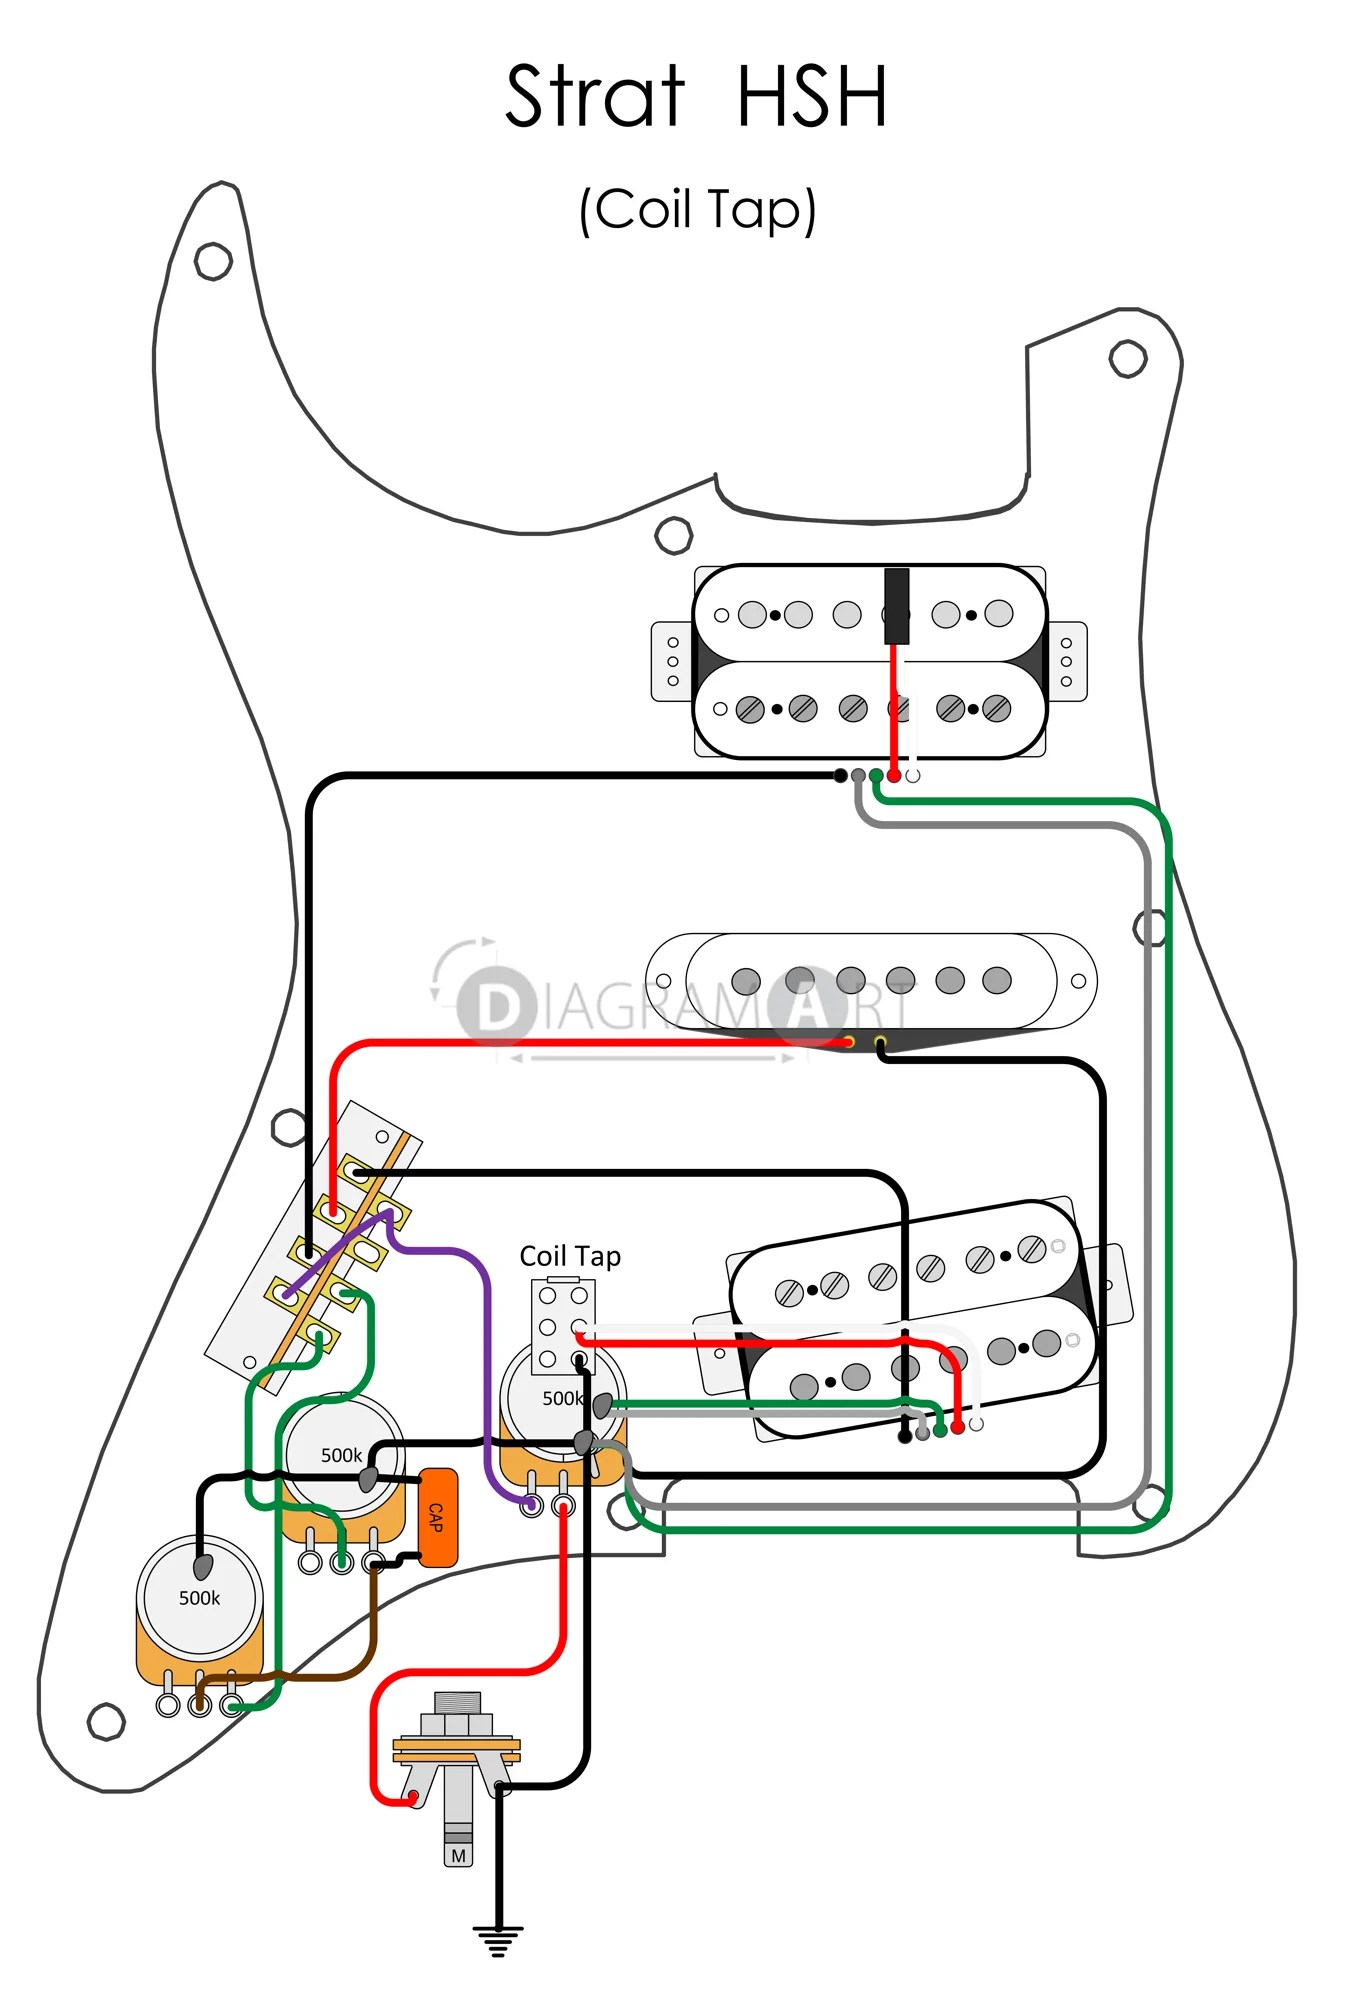 medium resolution of hsh wiring diagram wiring diagrams lolstrat wiring diagram hsh today wiring diagram update seymour duncan hsh